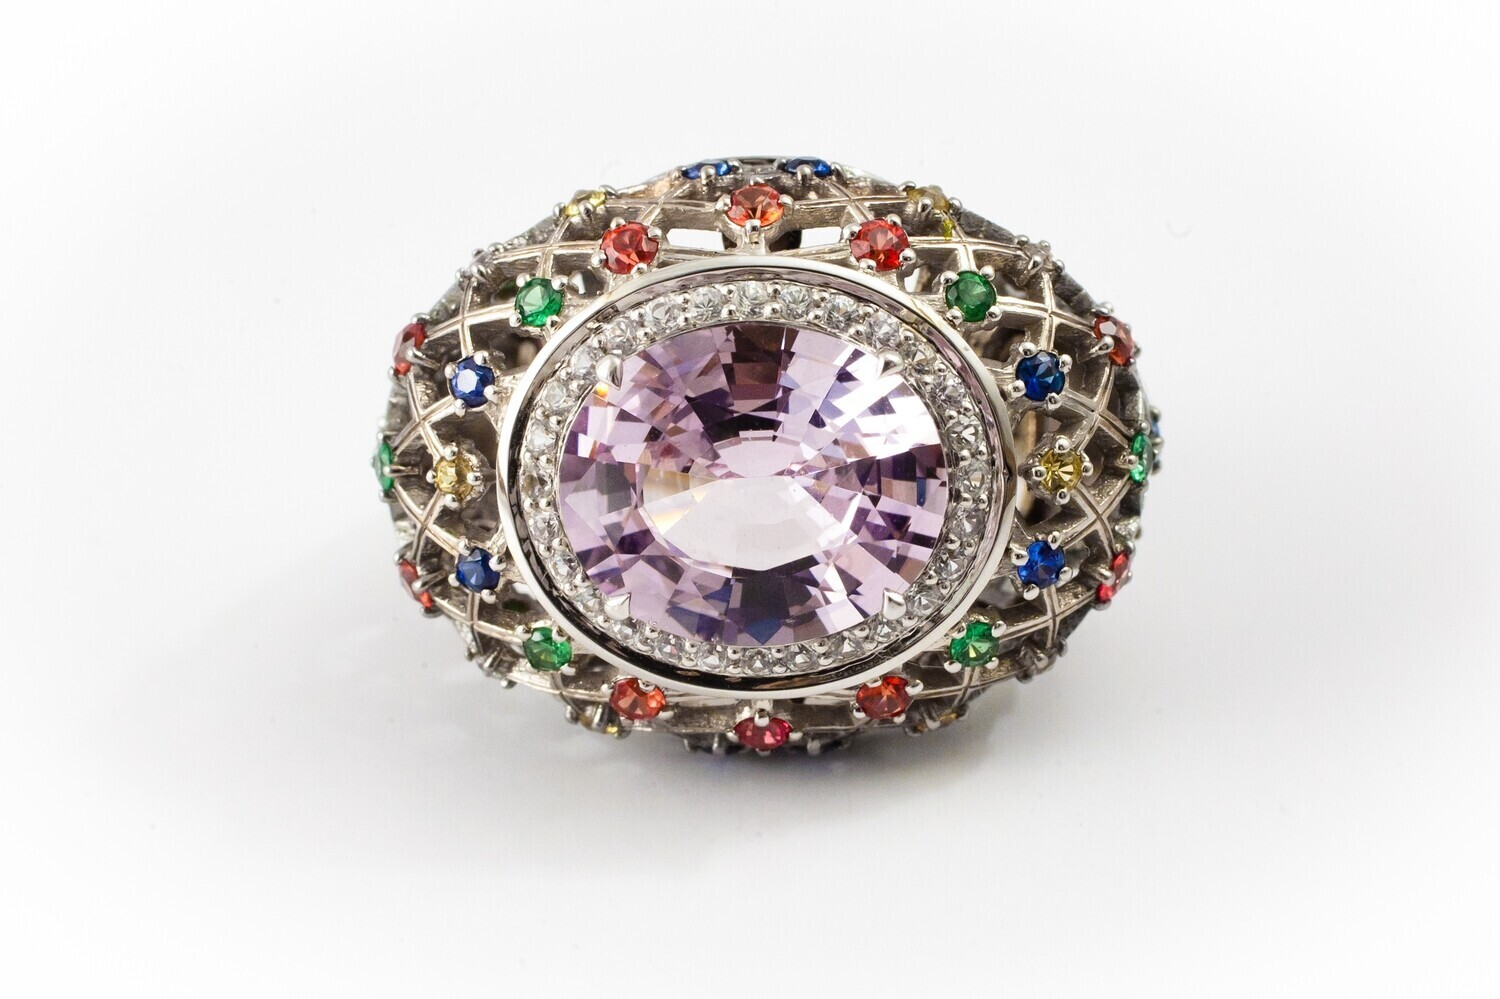 18K Gold Ring with Spinel and Sapphires, Color Gems Collection, U361R